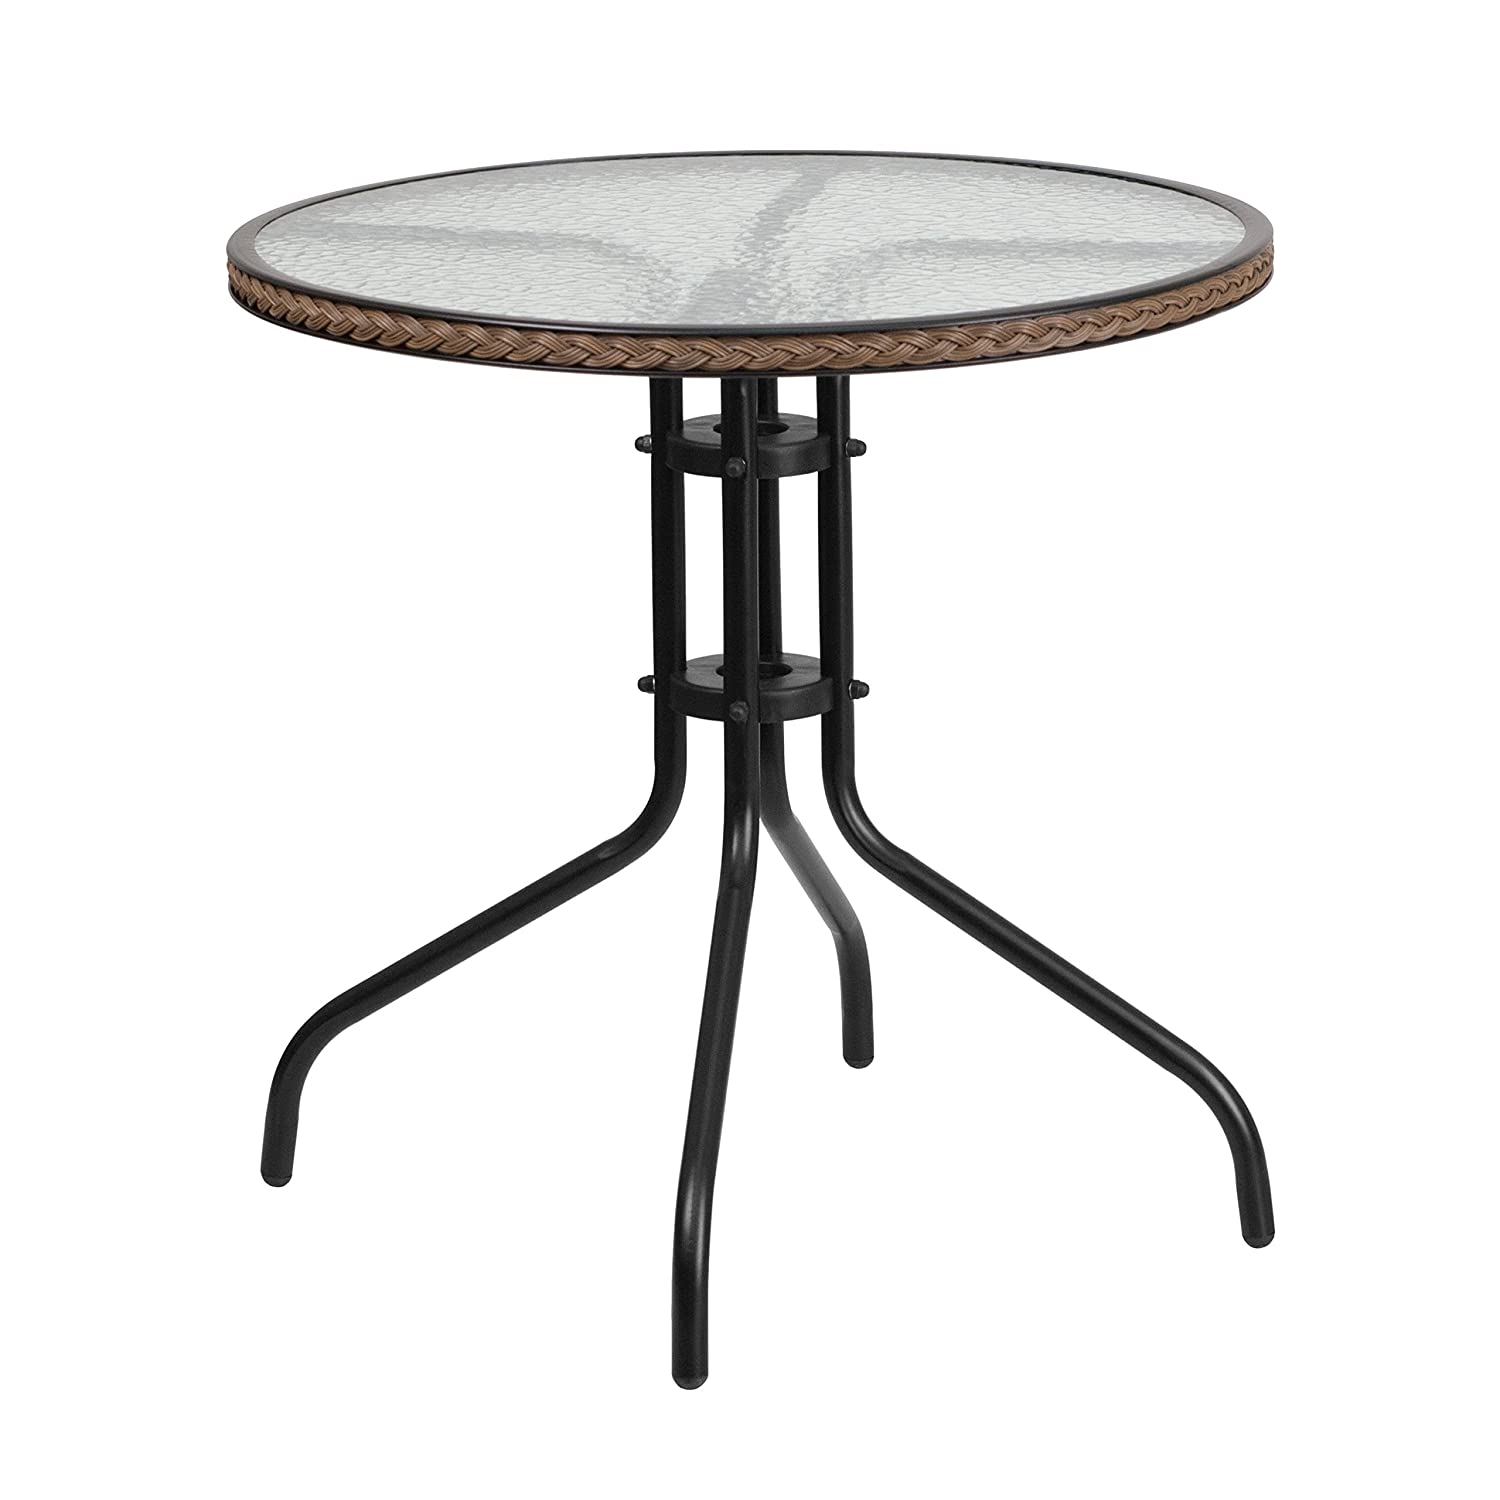 Flash Furniture 28 Round Tempered Glass Metal Table with Dark Brown Rattan Edging